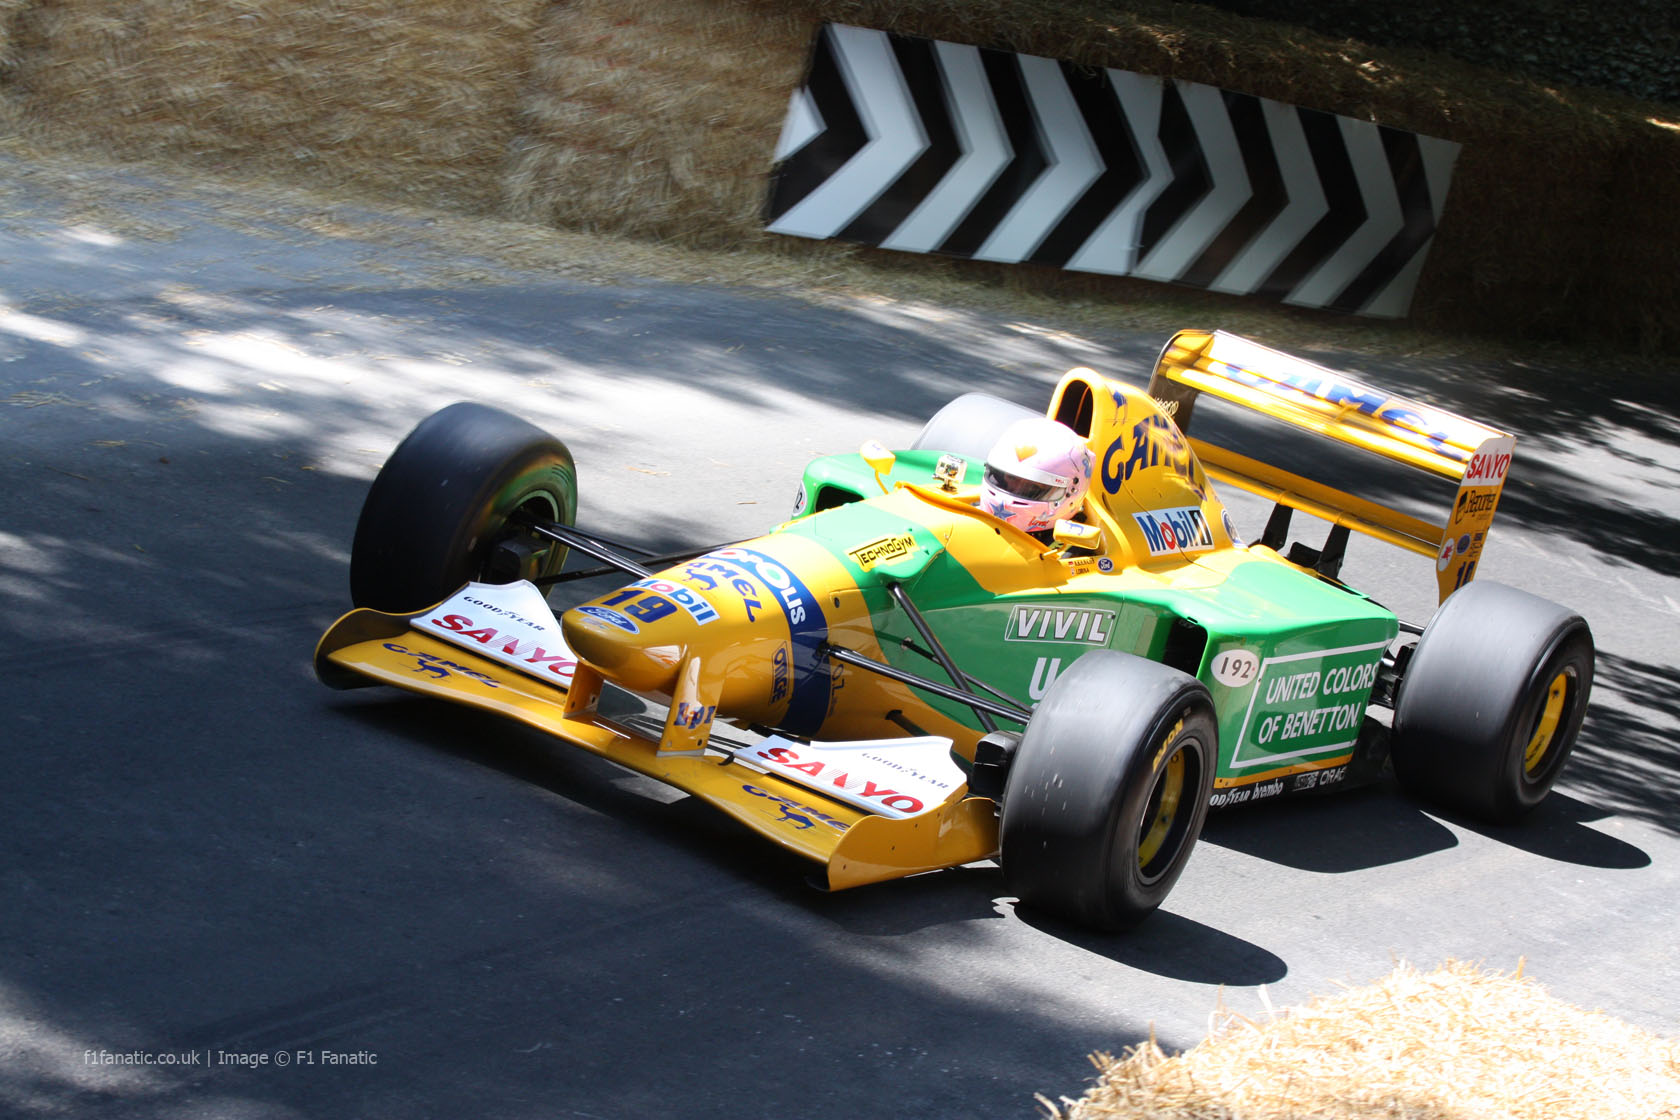 Benetton B192, Goodwood Festival of Speed, 2014